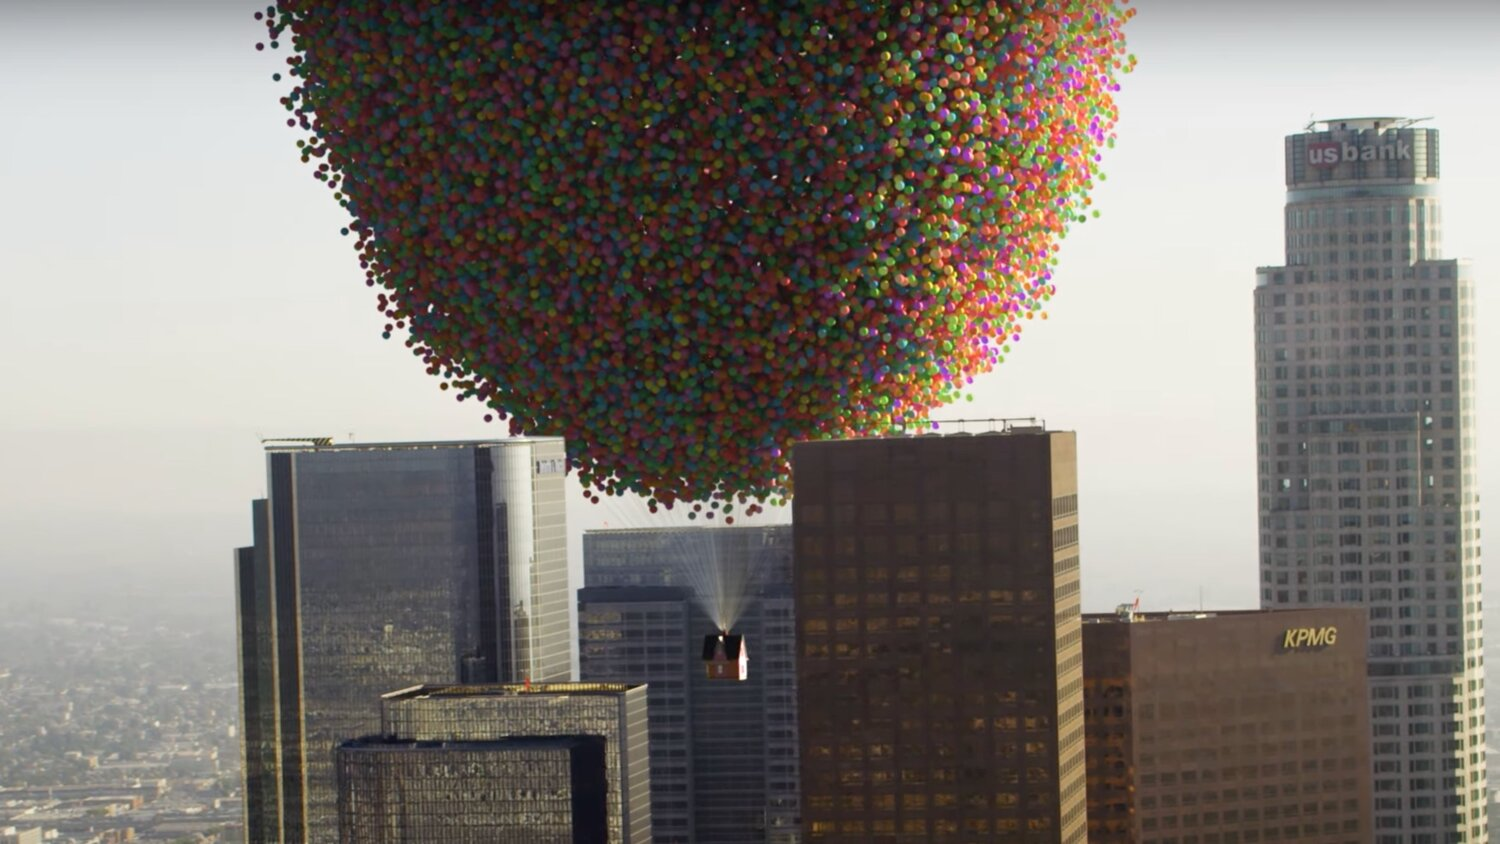 Corridor Crew Simulates The Flying Balloon House in Pixar's UP, But With Real Physics — GeekTyrant